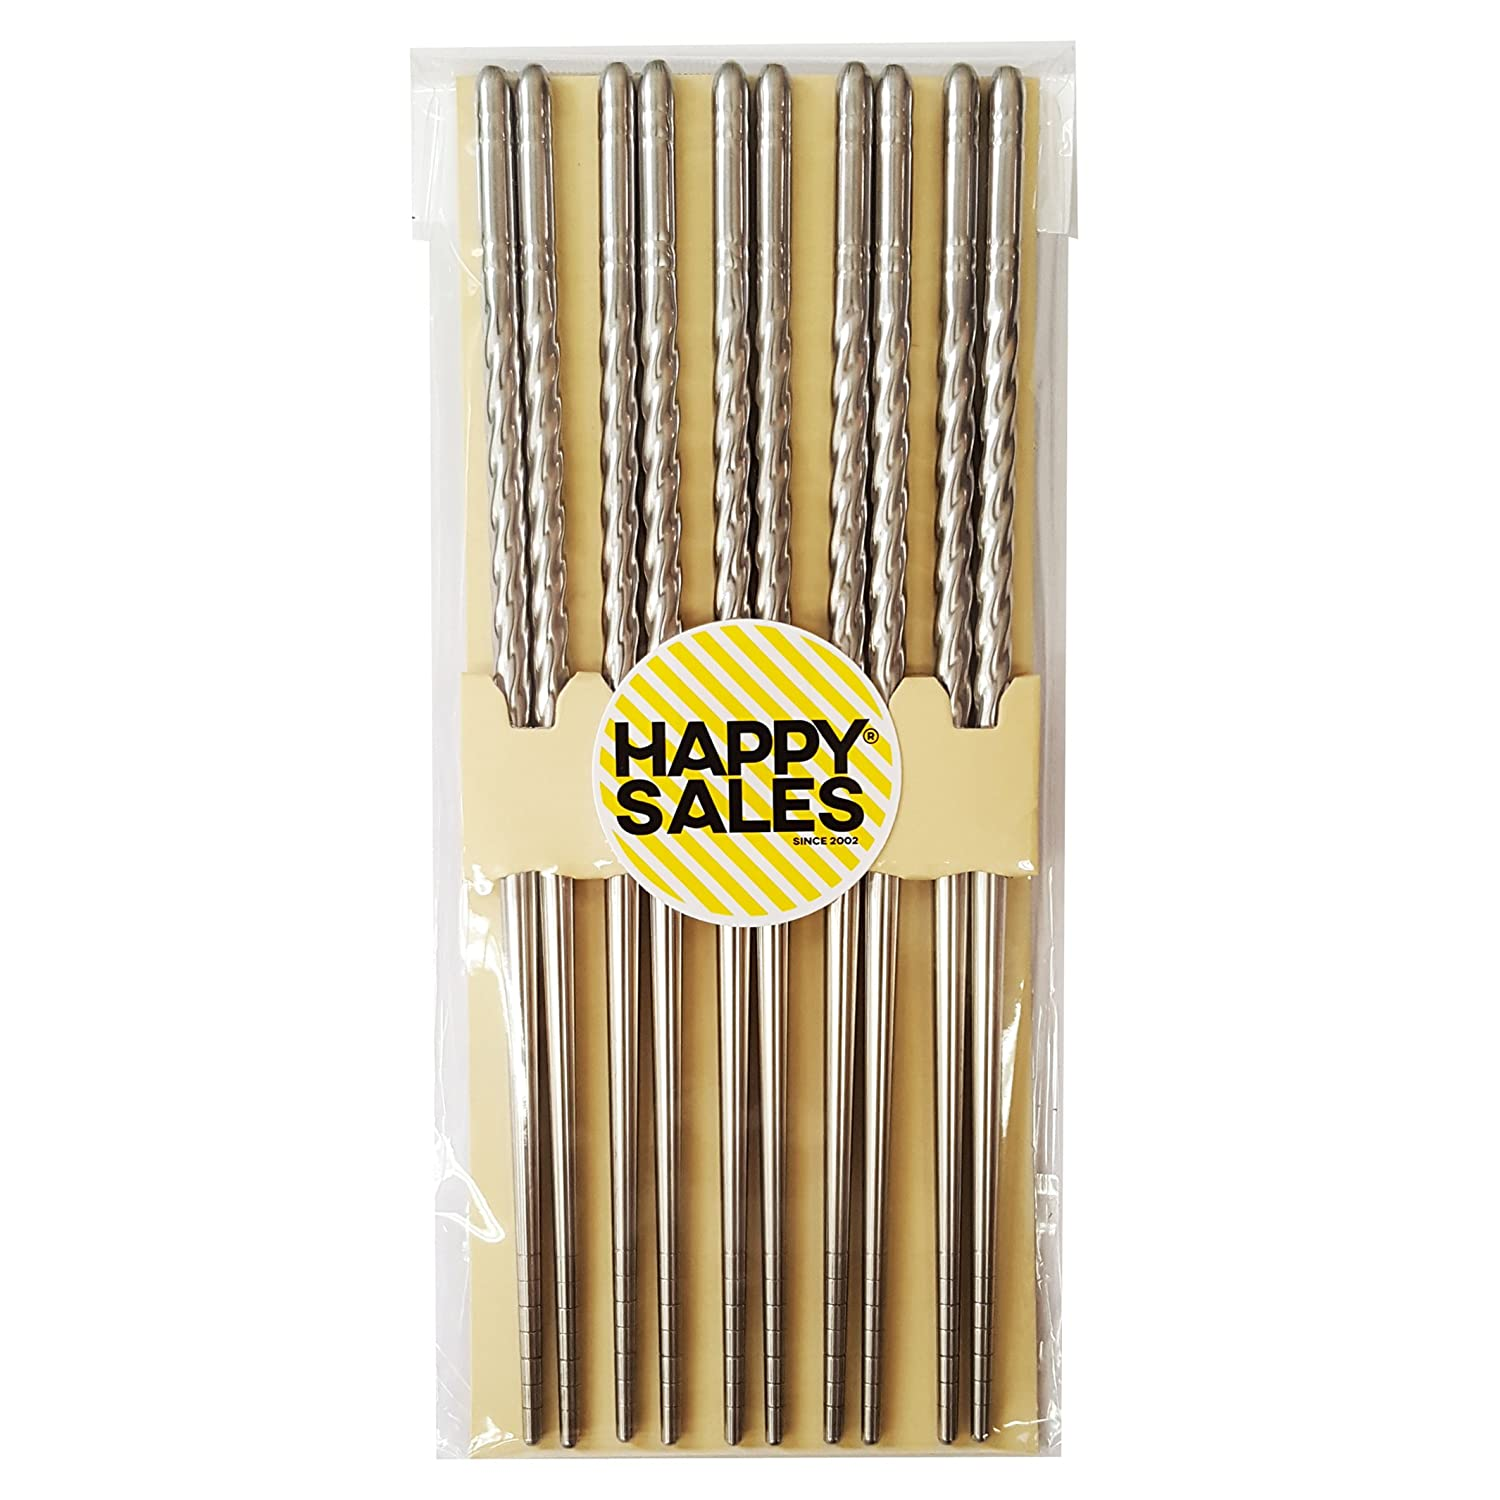 Happy Sales Stainless Steel Twist Chopsticks Review